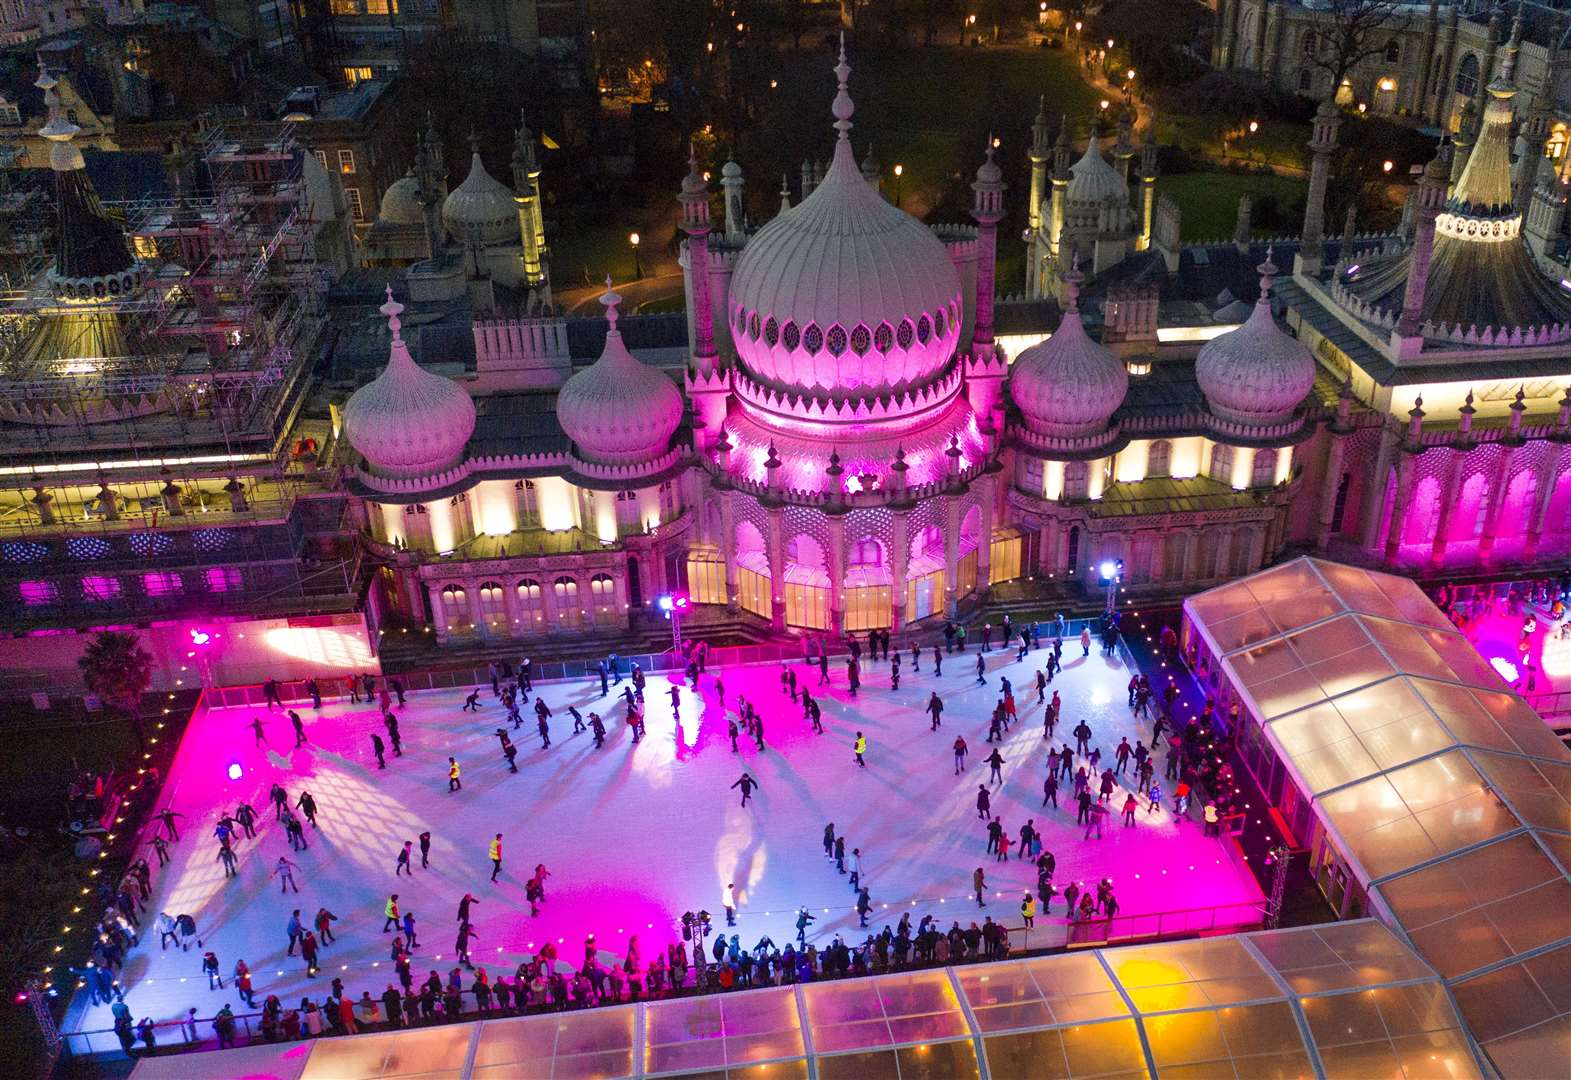 Make a day of it out on the ice this Christmas